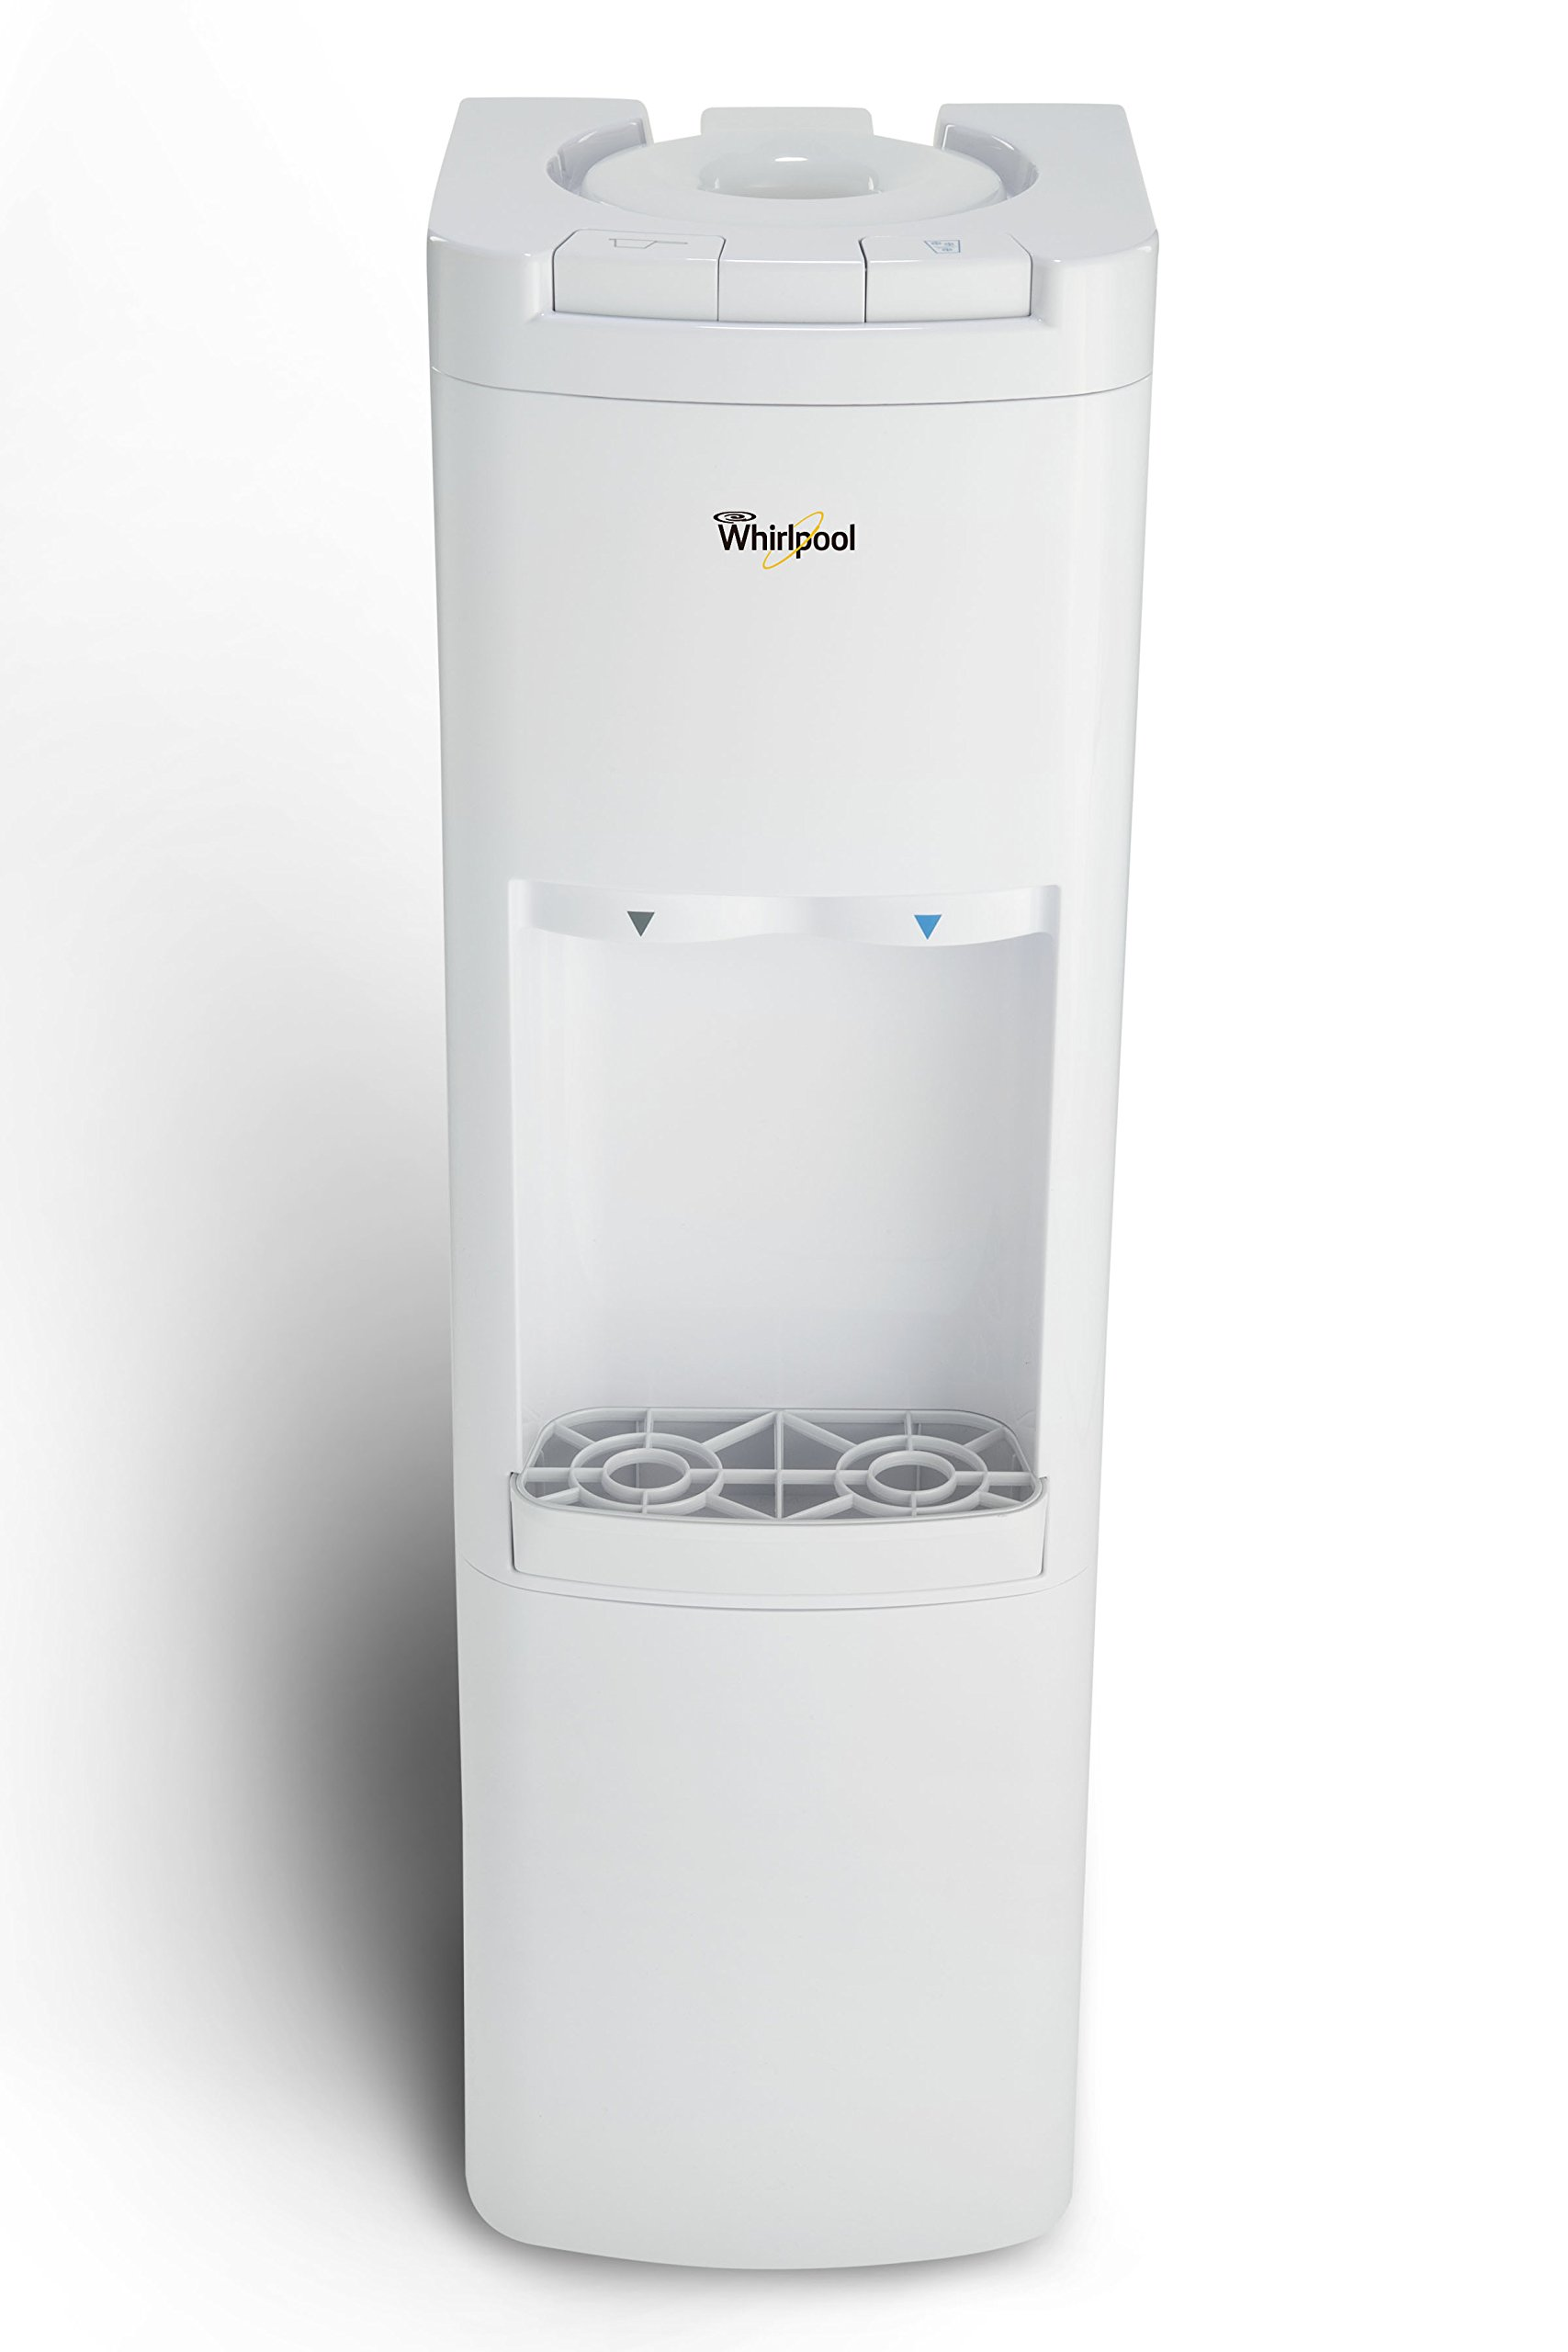 Whirlpool Commercial Water Cooler, Ice Chilled Water, White Water Dispenser by Whirlpool (Image #3)